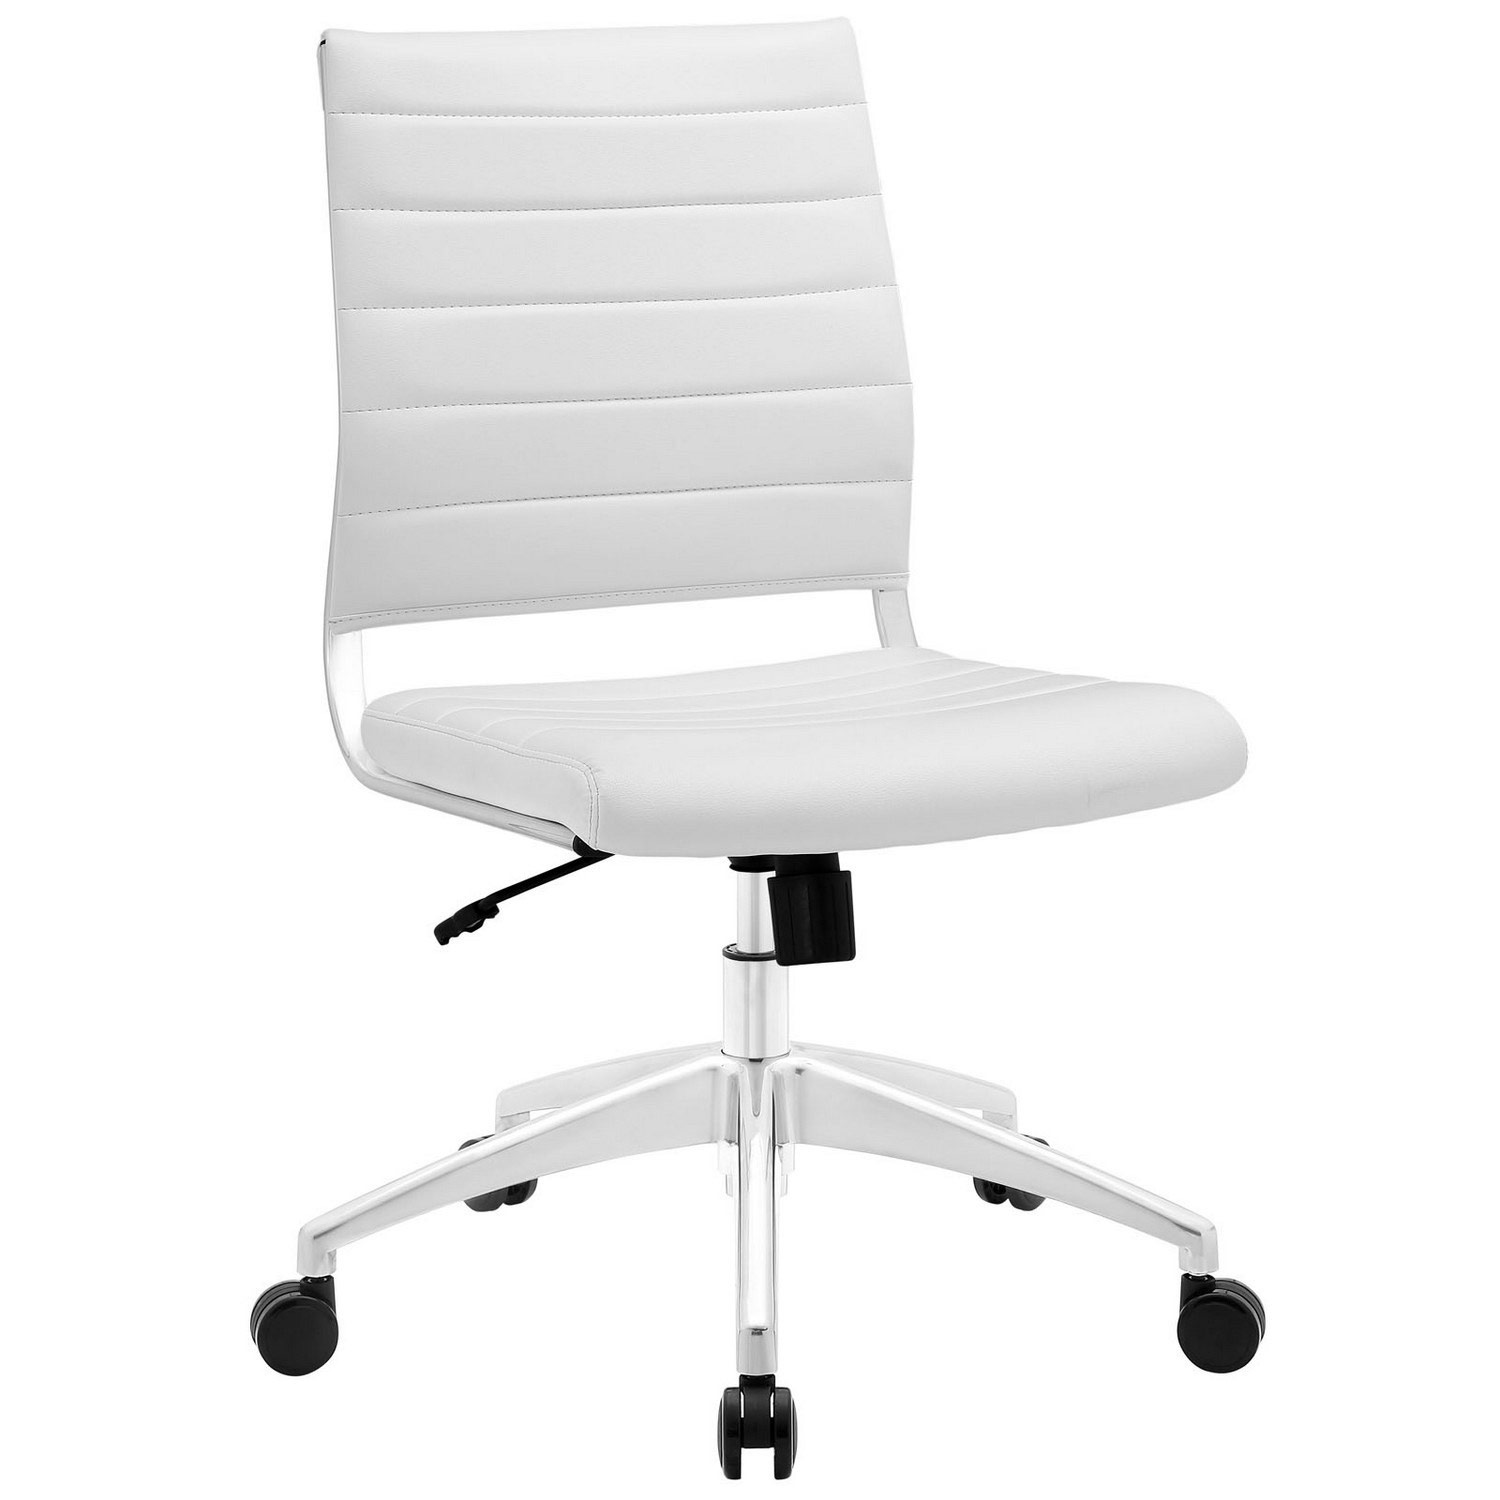 Modway Jive Armless Mid Back Office Chair - White